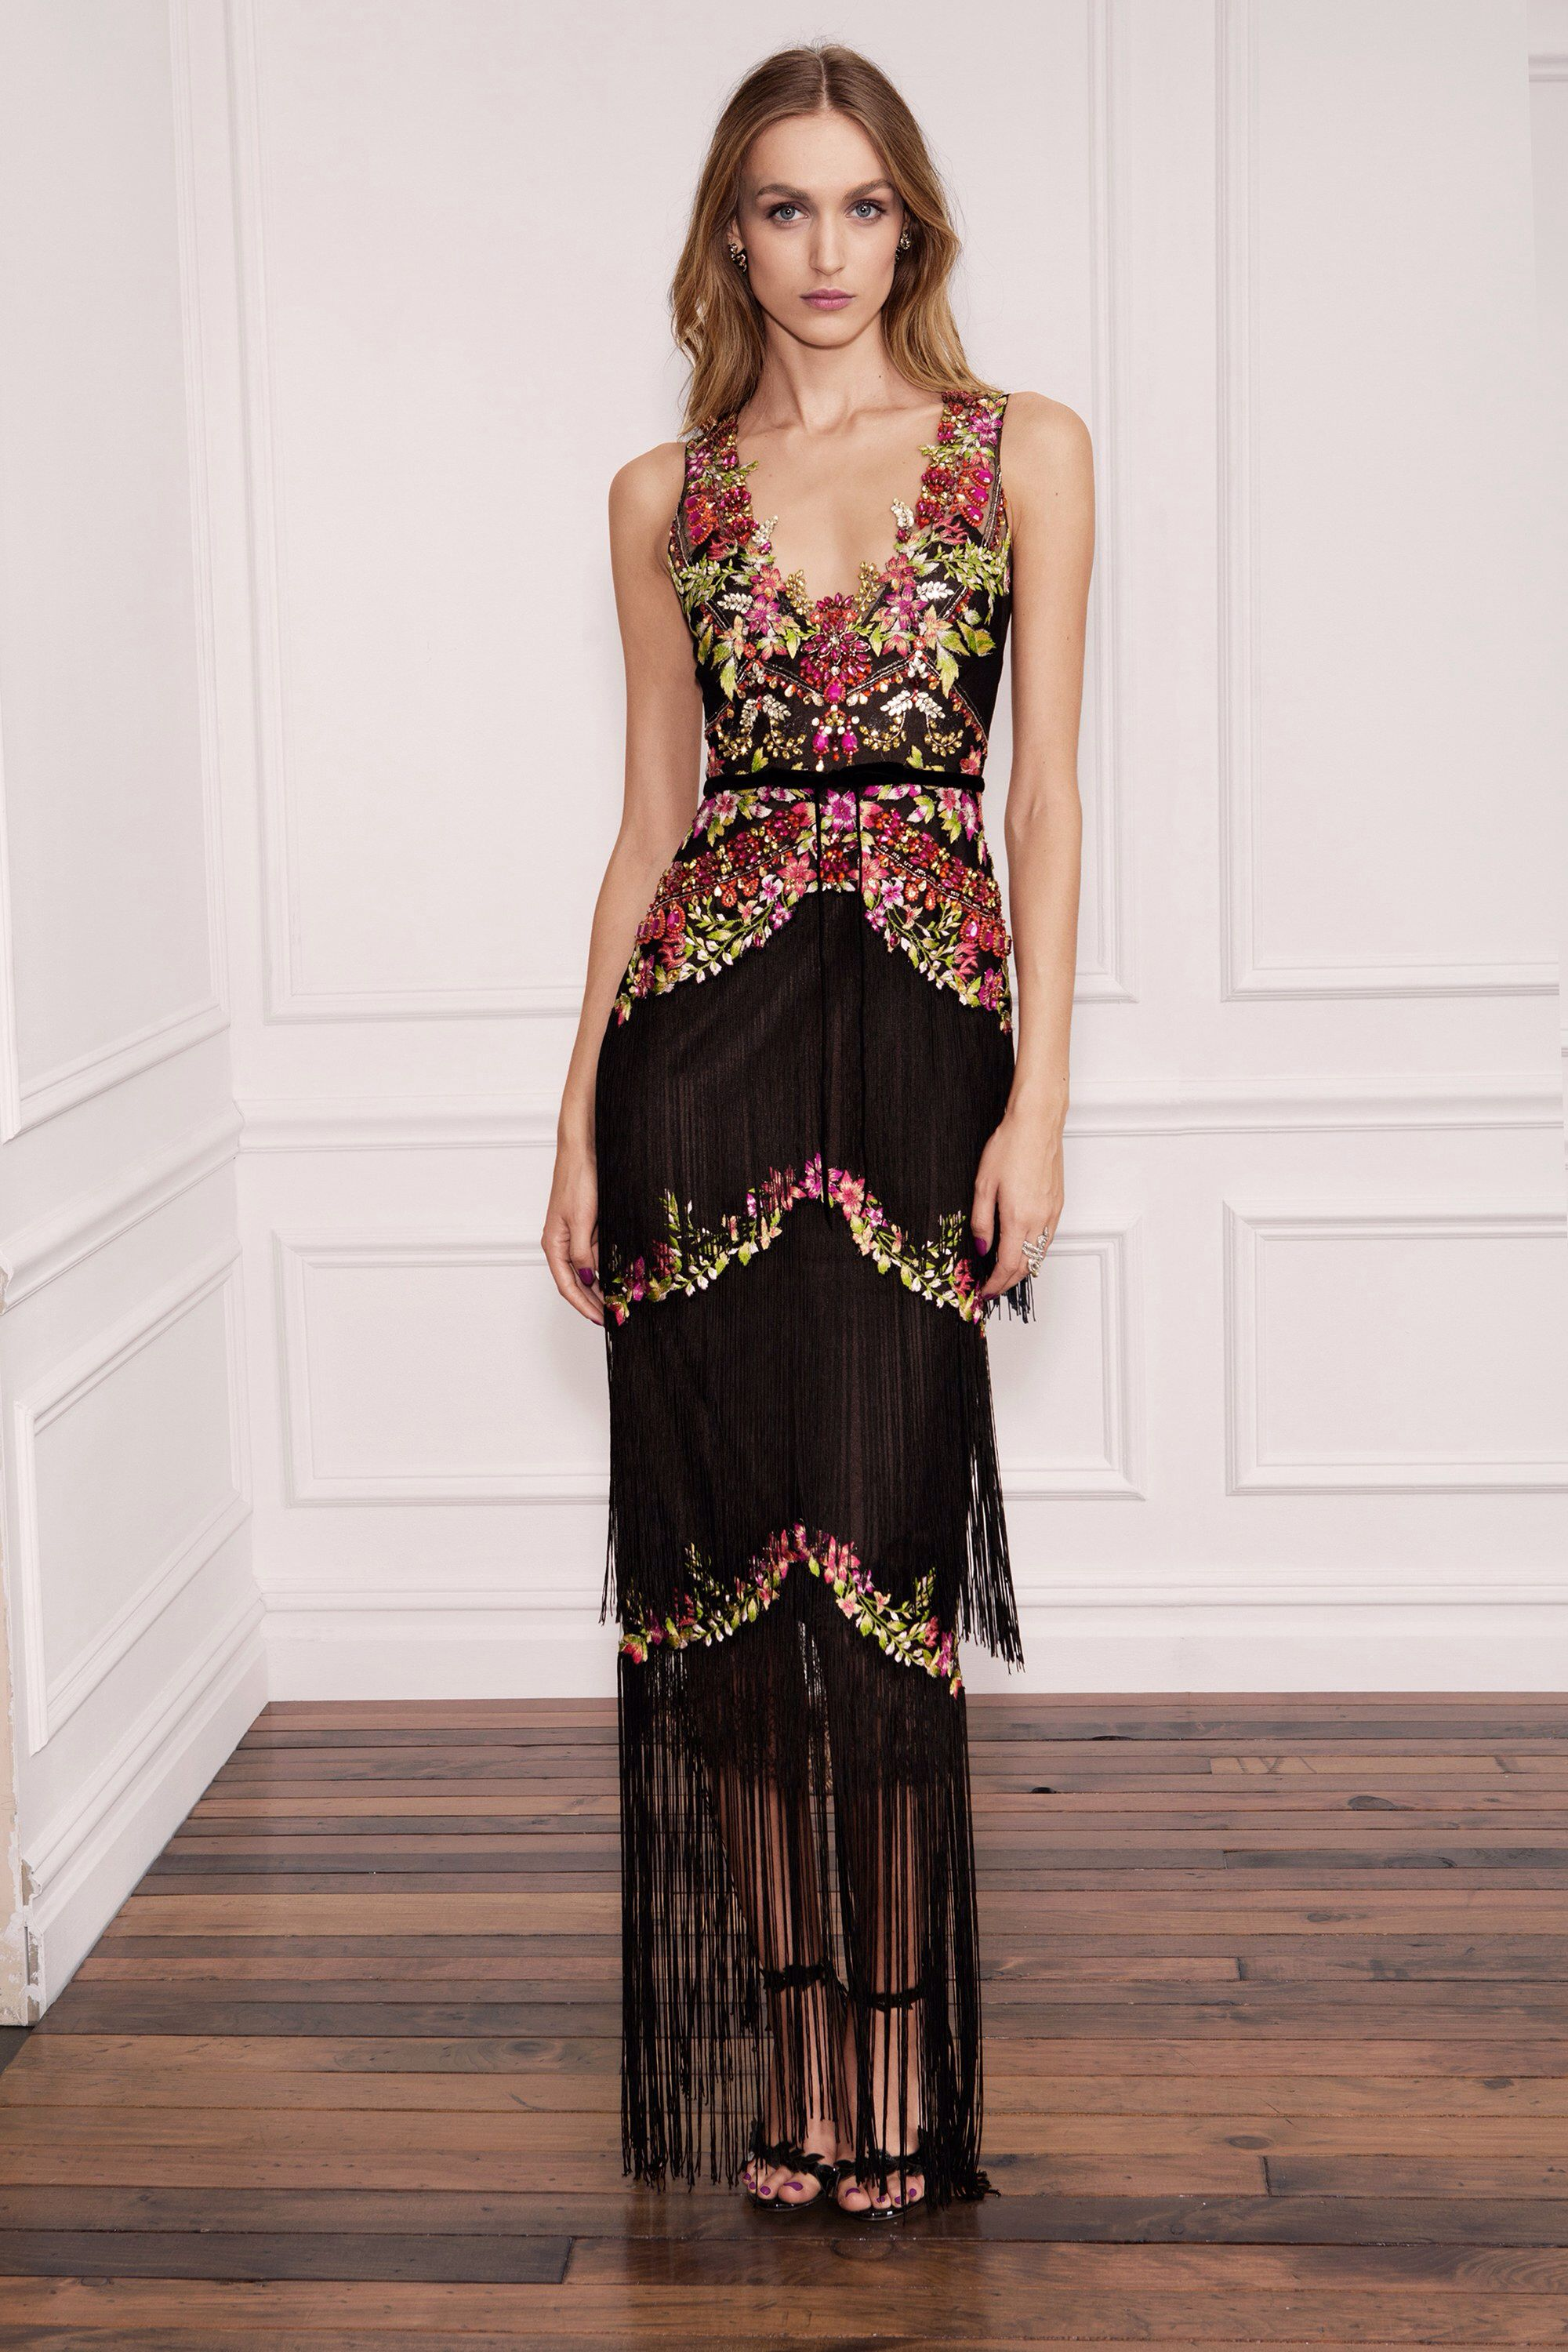 Marchesa Notte Spring 2018 Ready-to-Wear Fashion Show Collection 89ee7db3fa7c